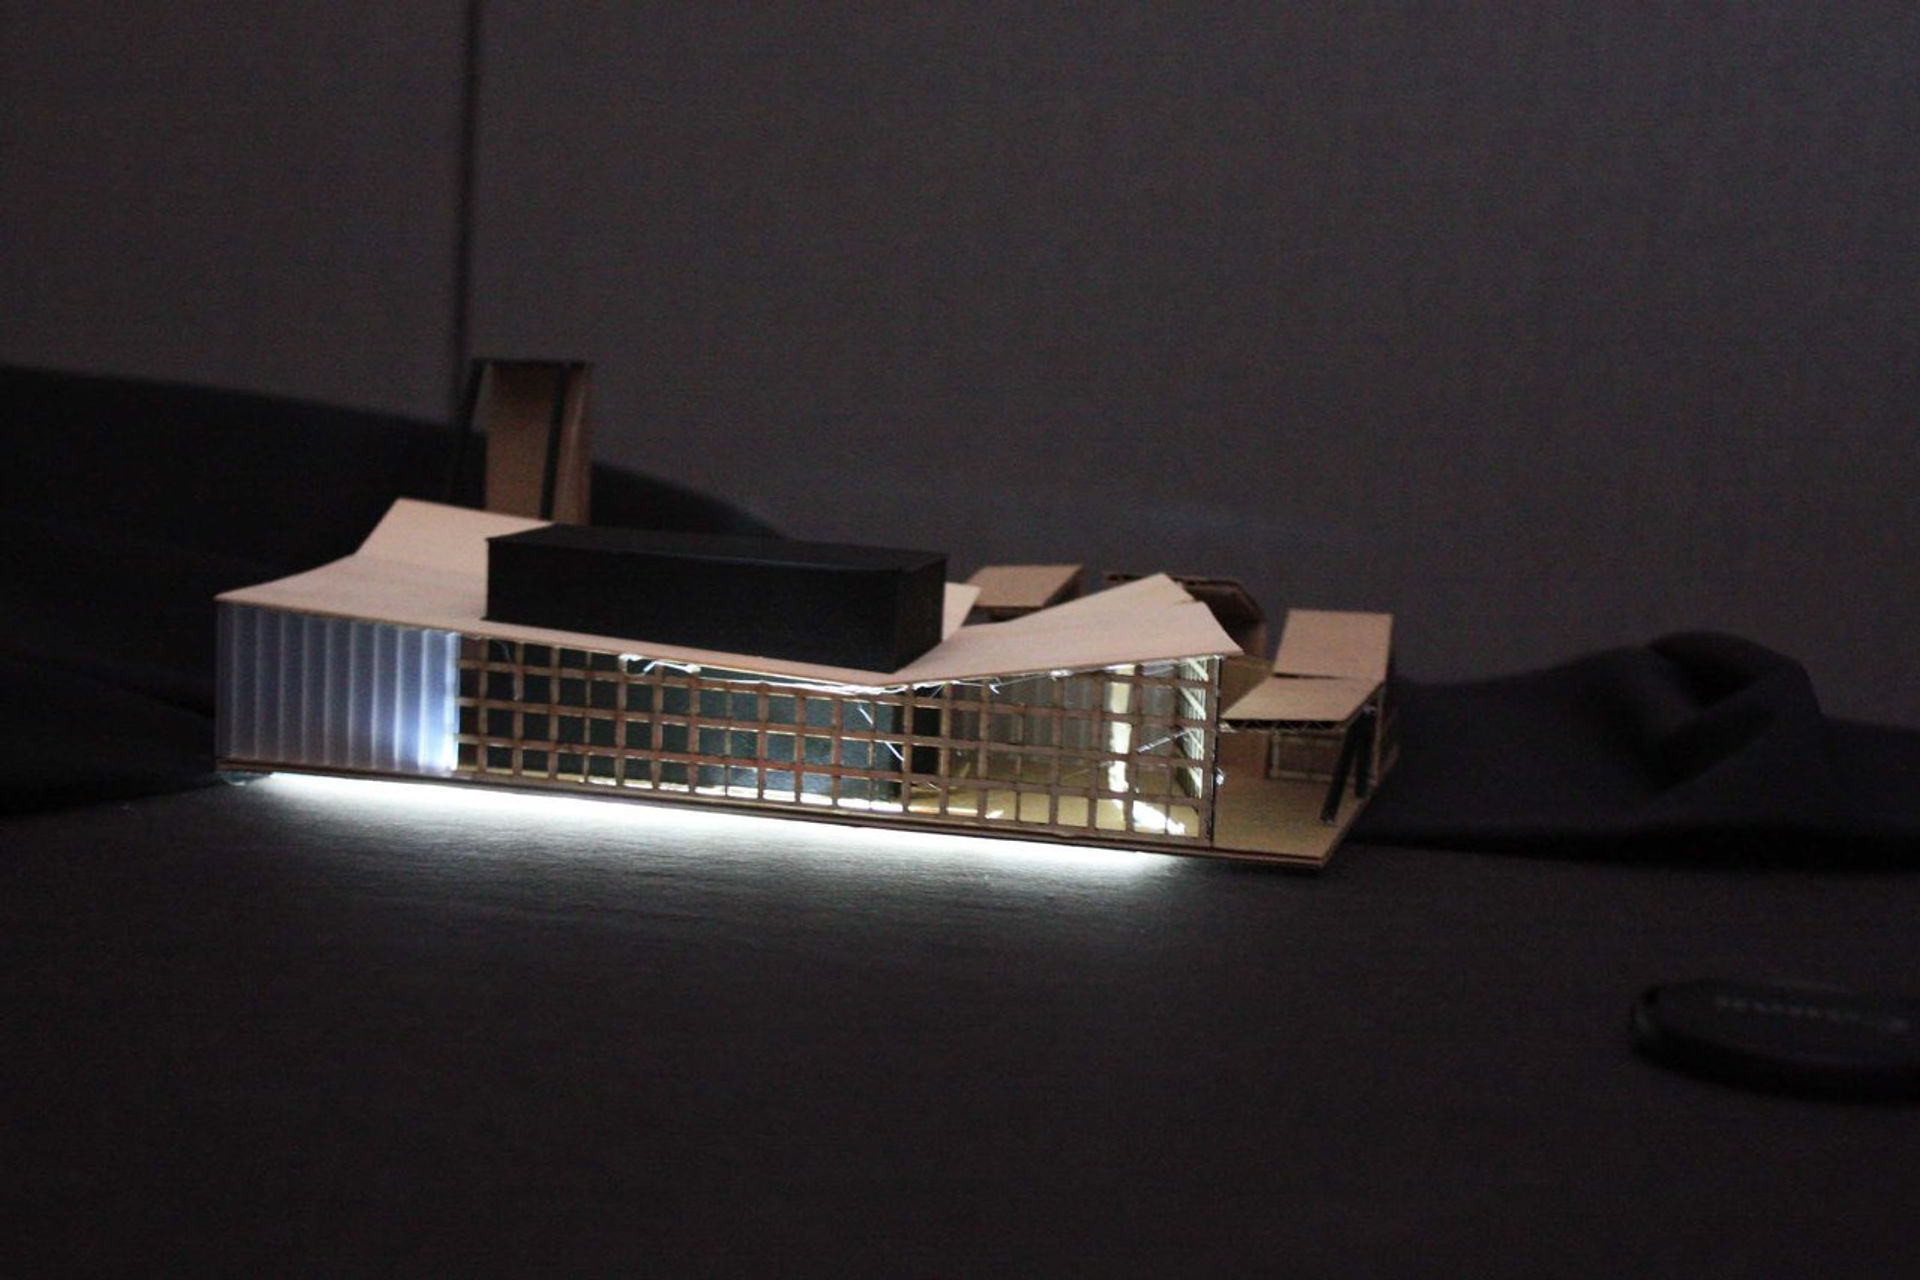 Performing Arts Center Light Model